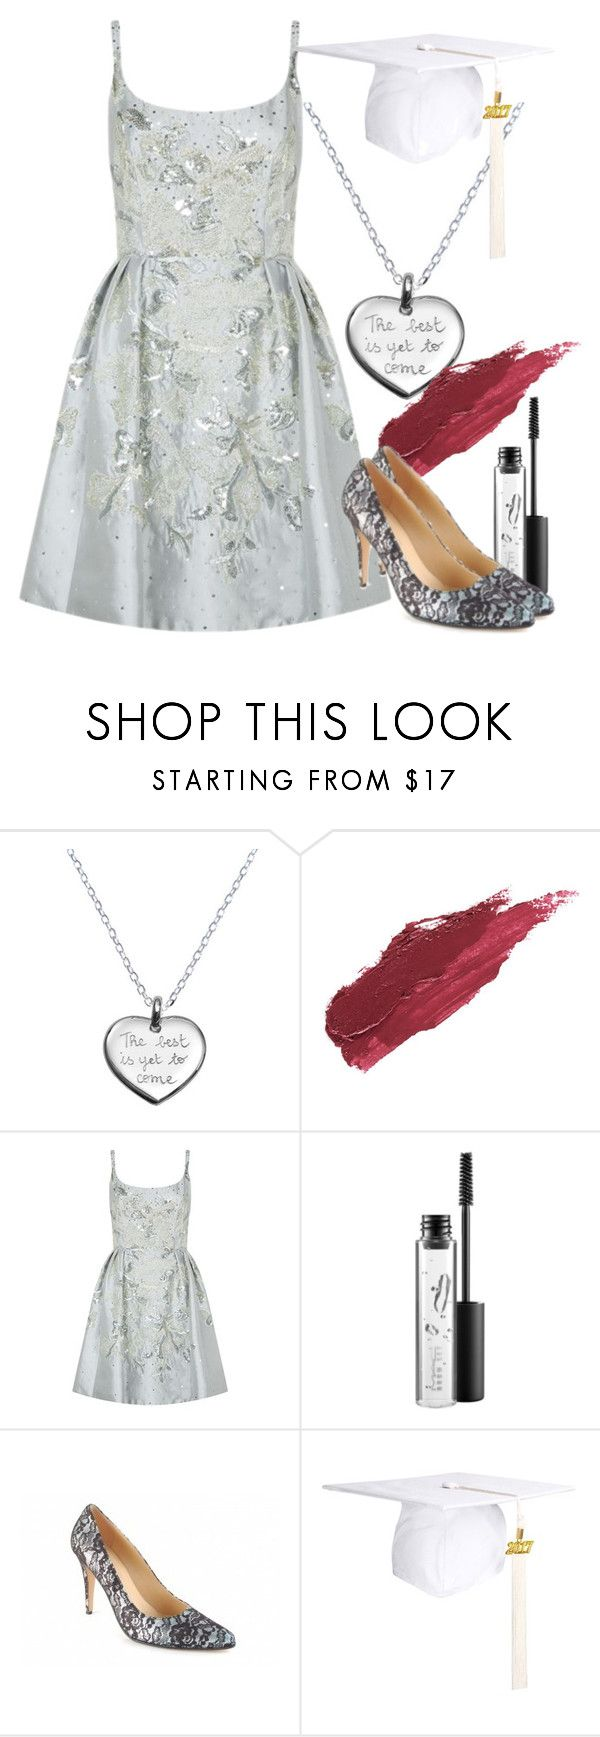 """Graduation Day Style"" by large-size-shoes ❤ liked on Polyvore featuring Merci Maman, Lily Lolo, Marchesa and MAC Cosmetics"